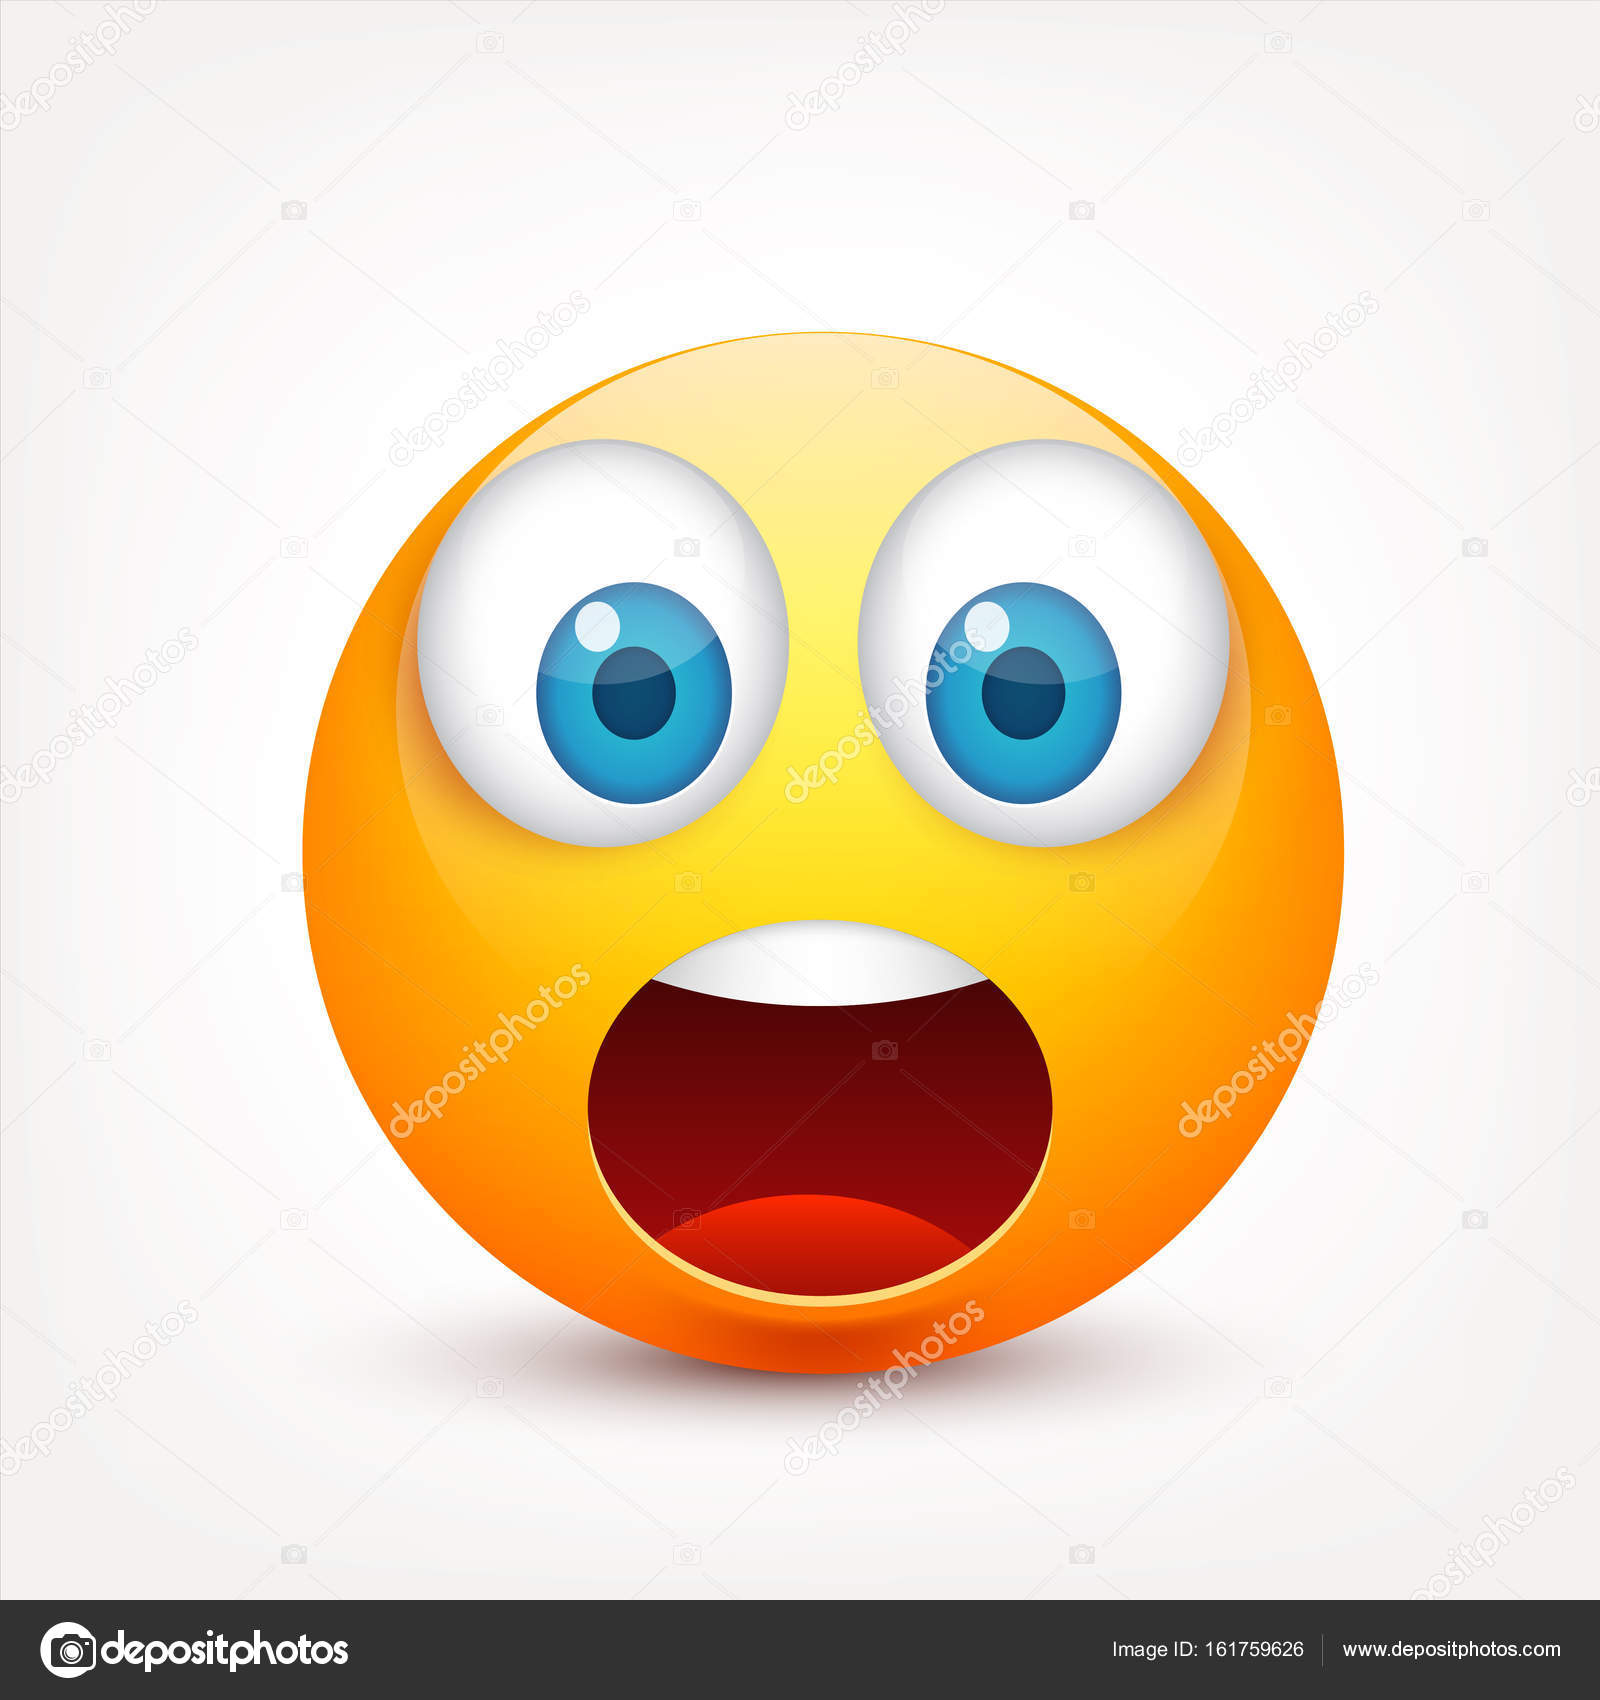 Smiley With Blue Eyes Emoticon Yellow Face With Emotions Facial